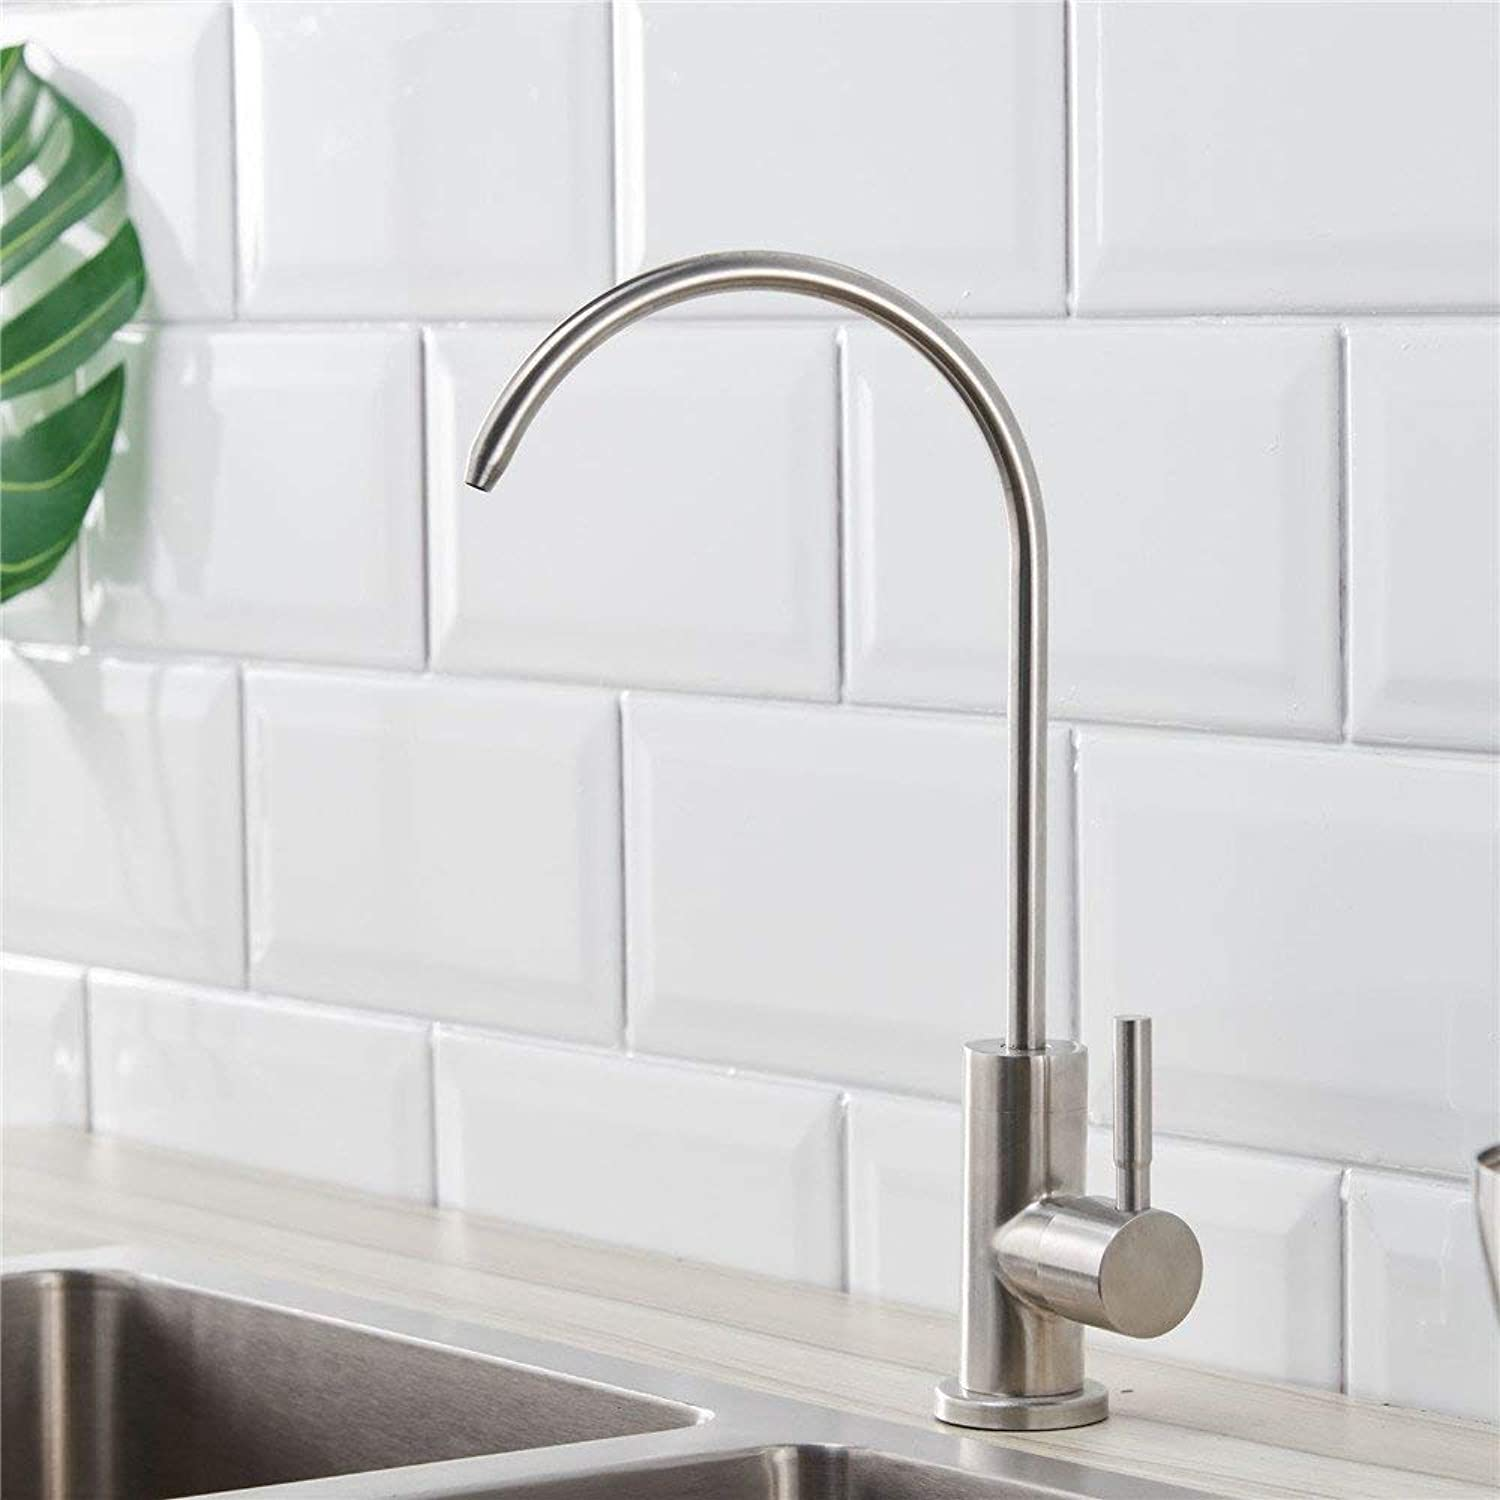 Oudan Lead 304 Stainless Steel Kitchen Faucet greenical Single Household Water Purifiers The Single Cold Drinking Water Tap Hole (color   -, Size   -)